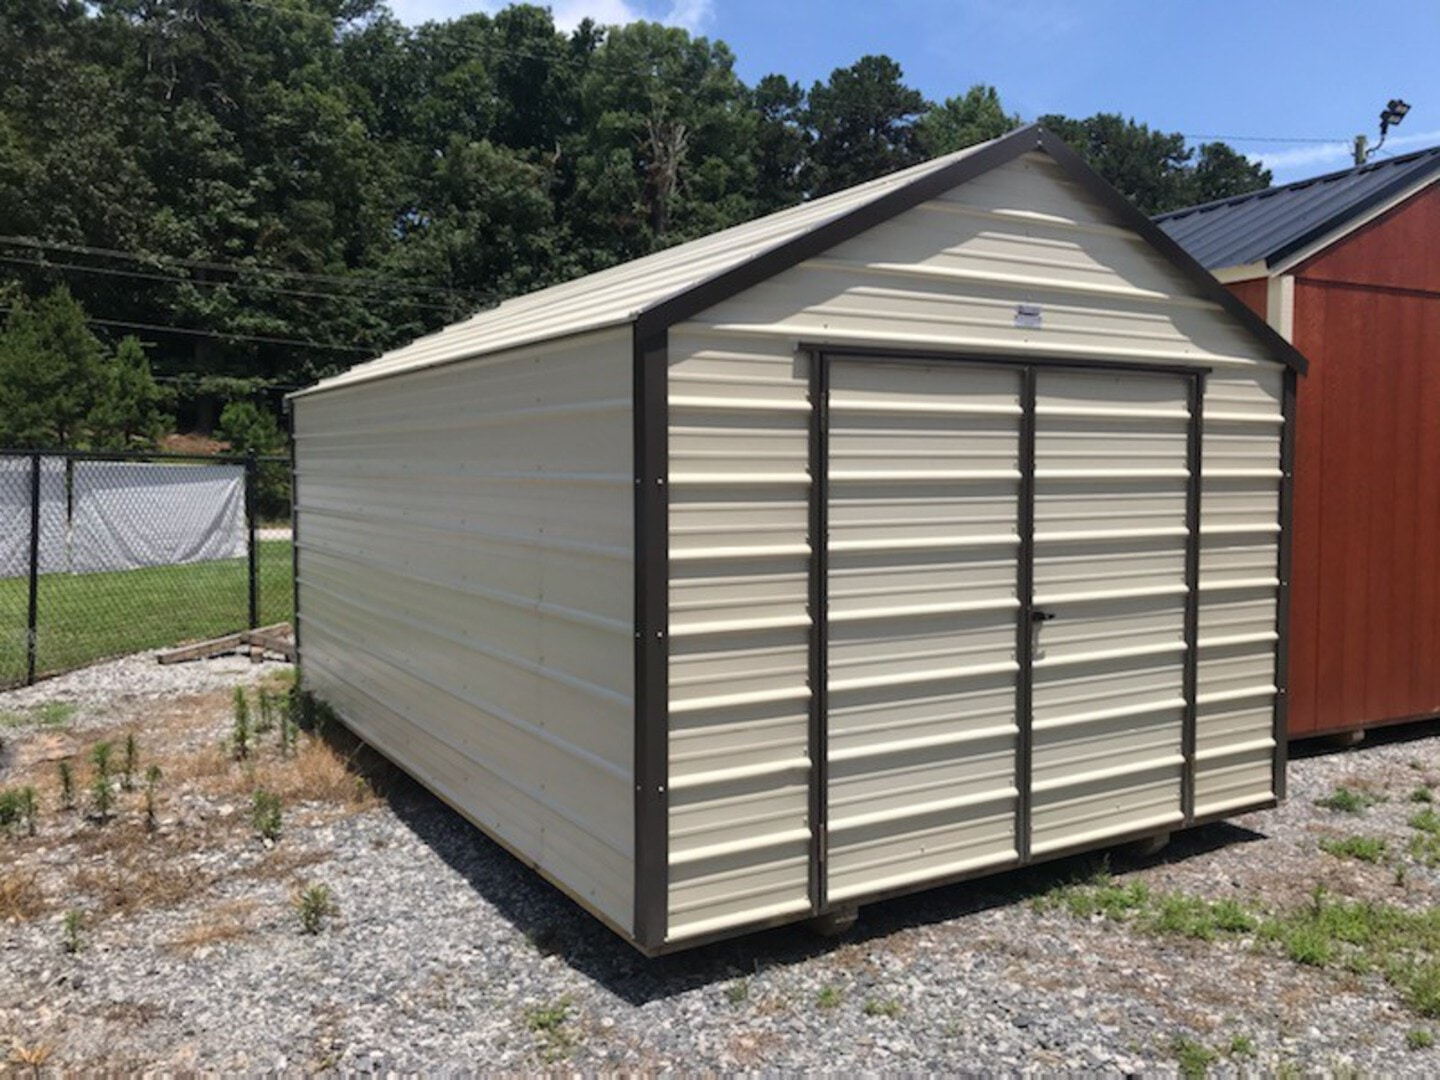 New, 0, Backyard Outfitters, 10X16 METAL UTILITY, Other